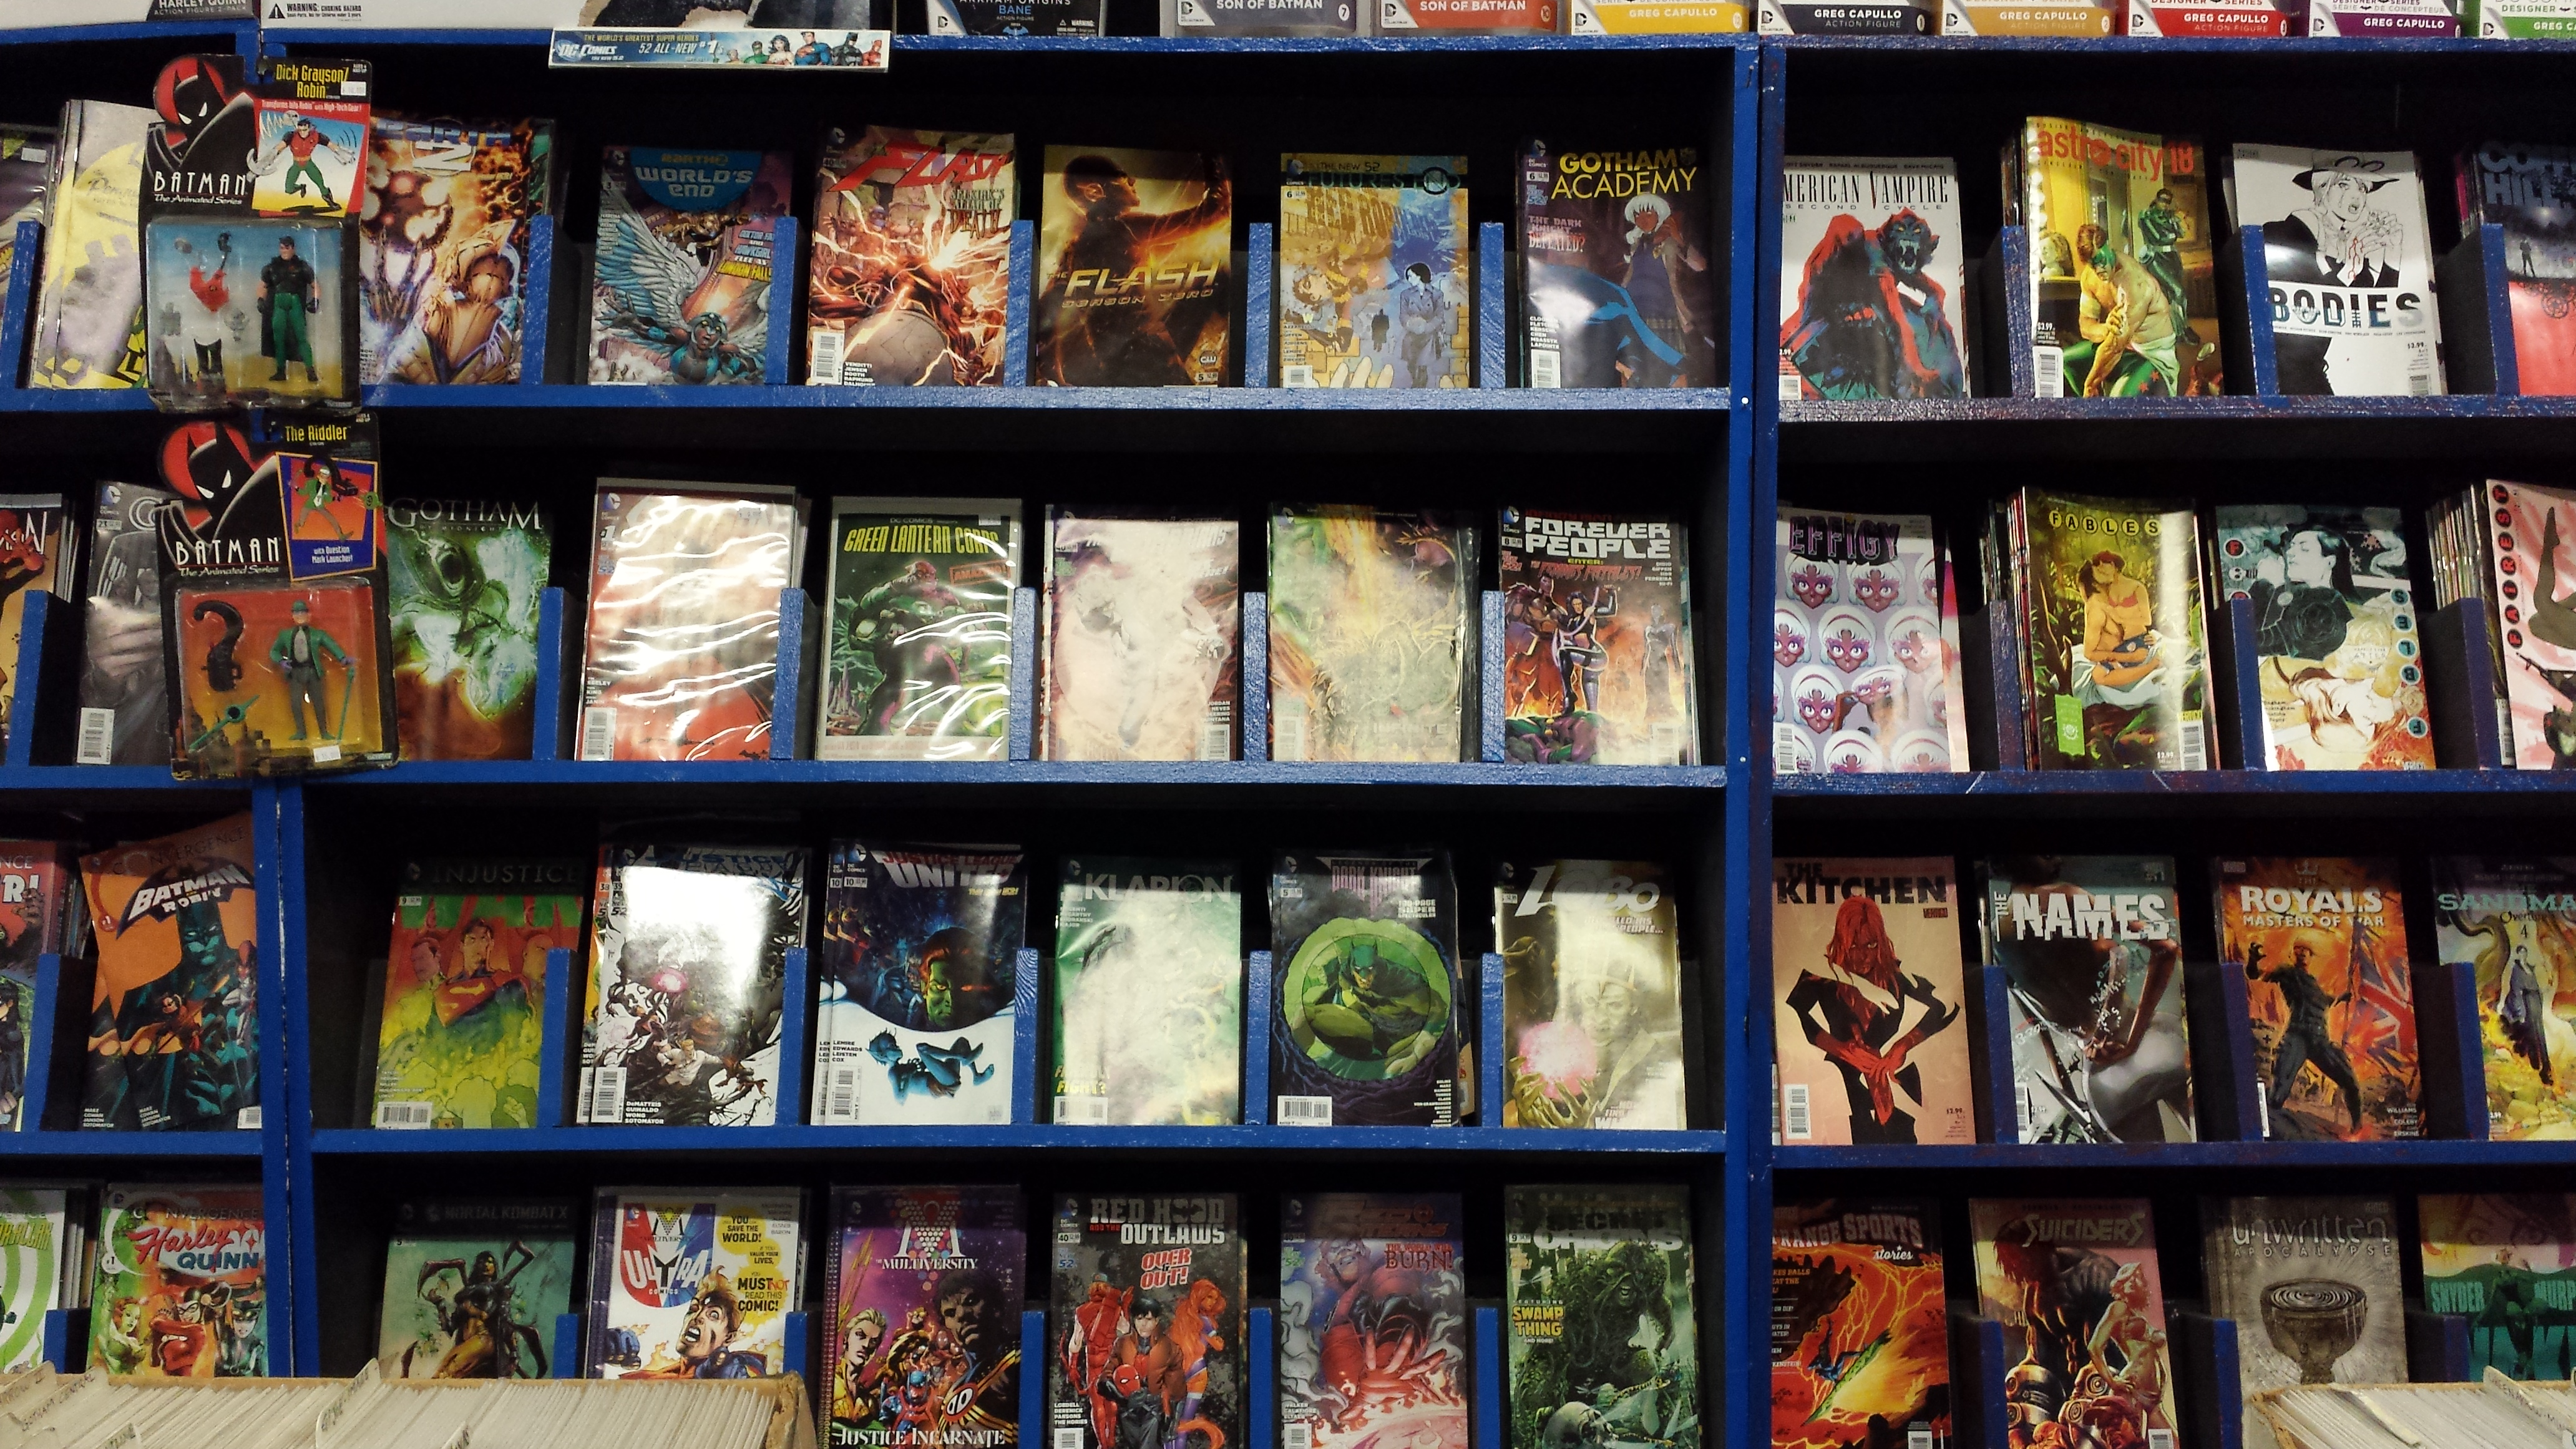 It all started with free comic book day for Comic book box shelves